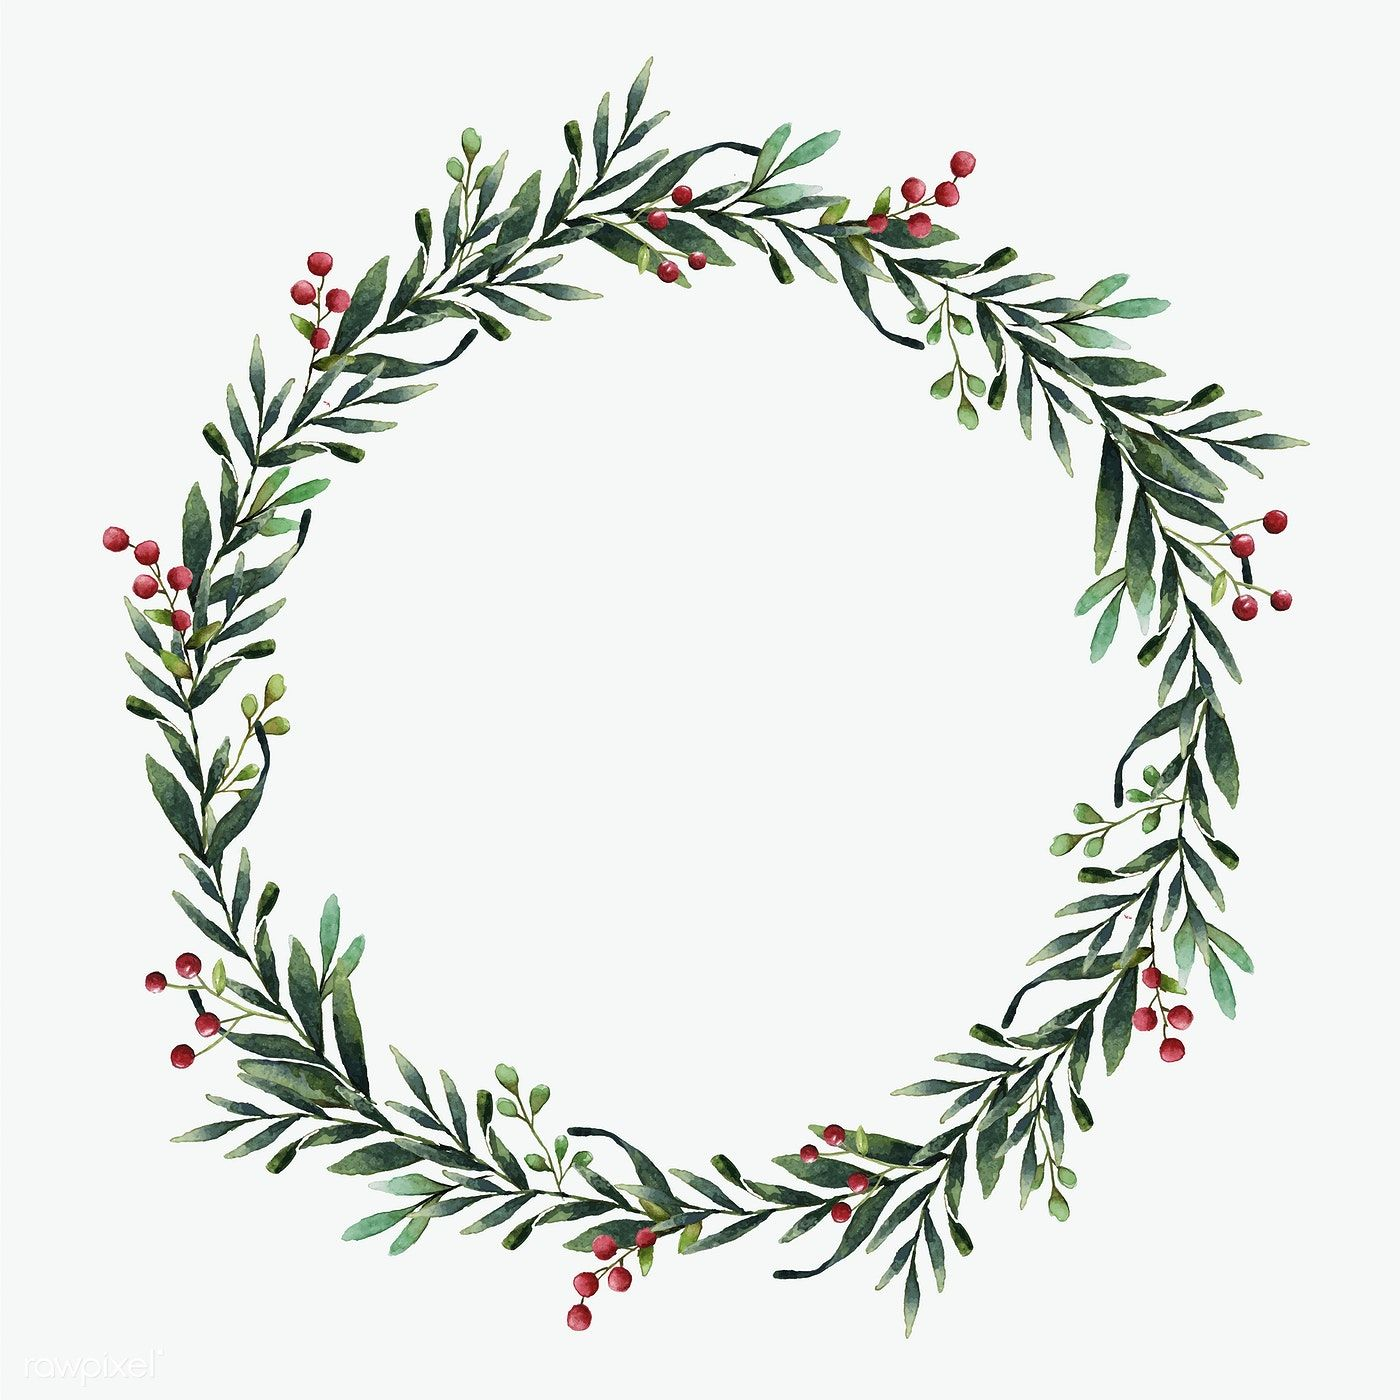 Round Christmas wreath vector watercolor style.